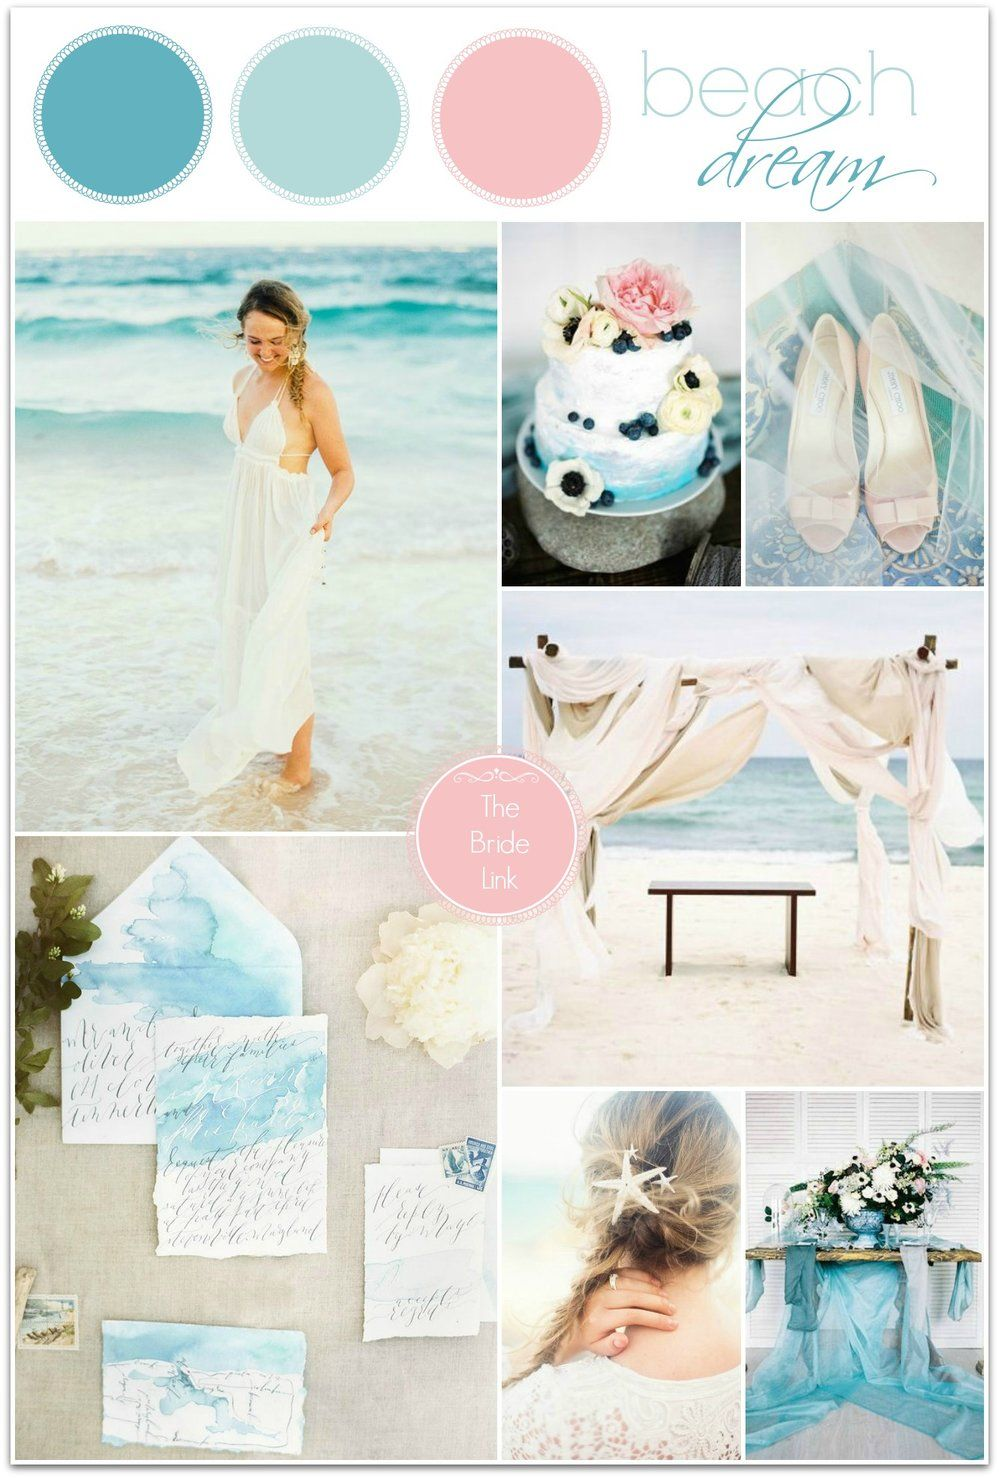 Beach wedding idea  Beach Wedding Ideas  Wedding Themes  Pinterest  Beach weddings